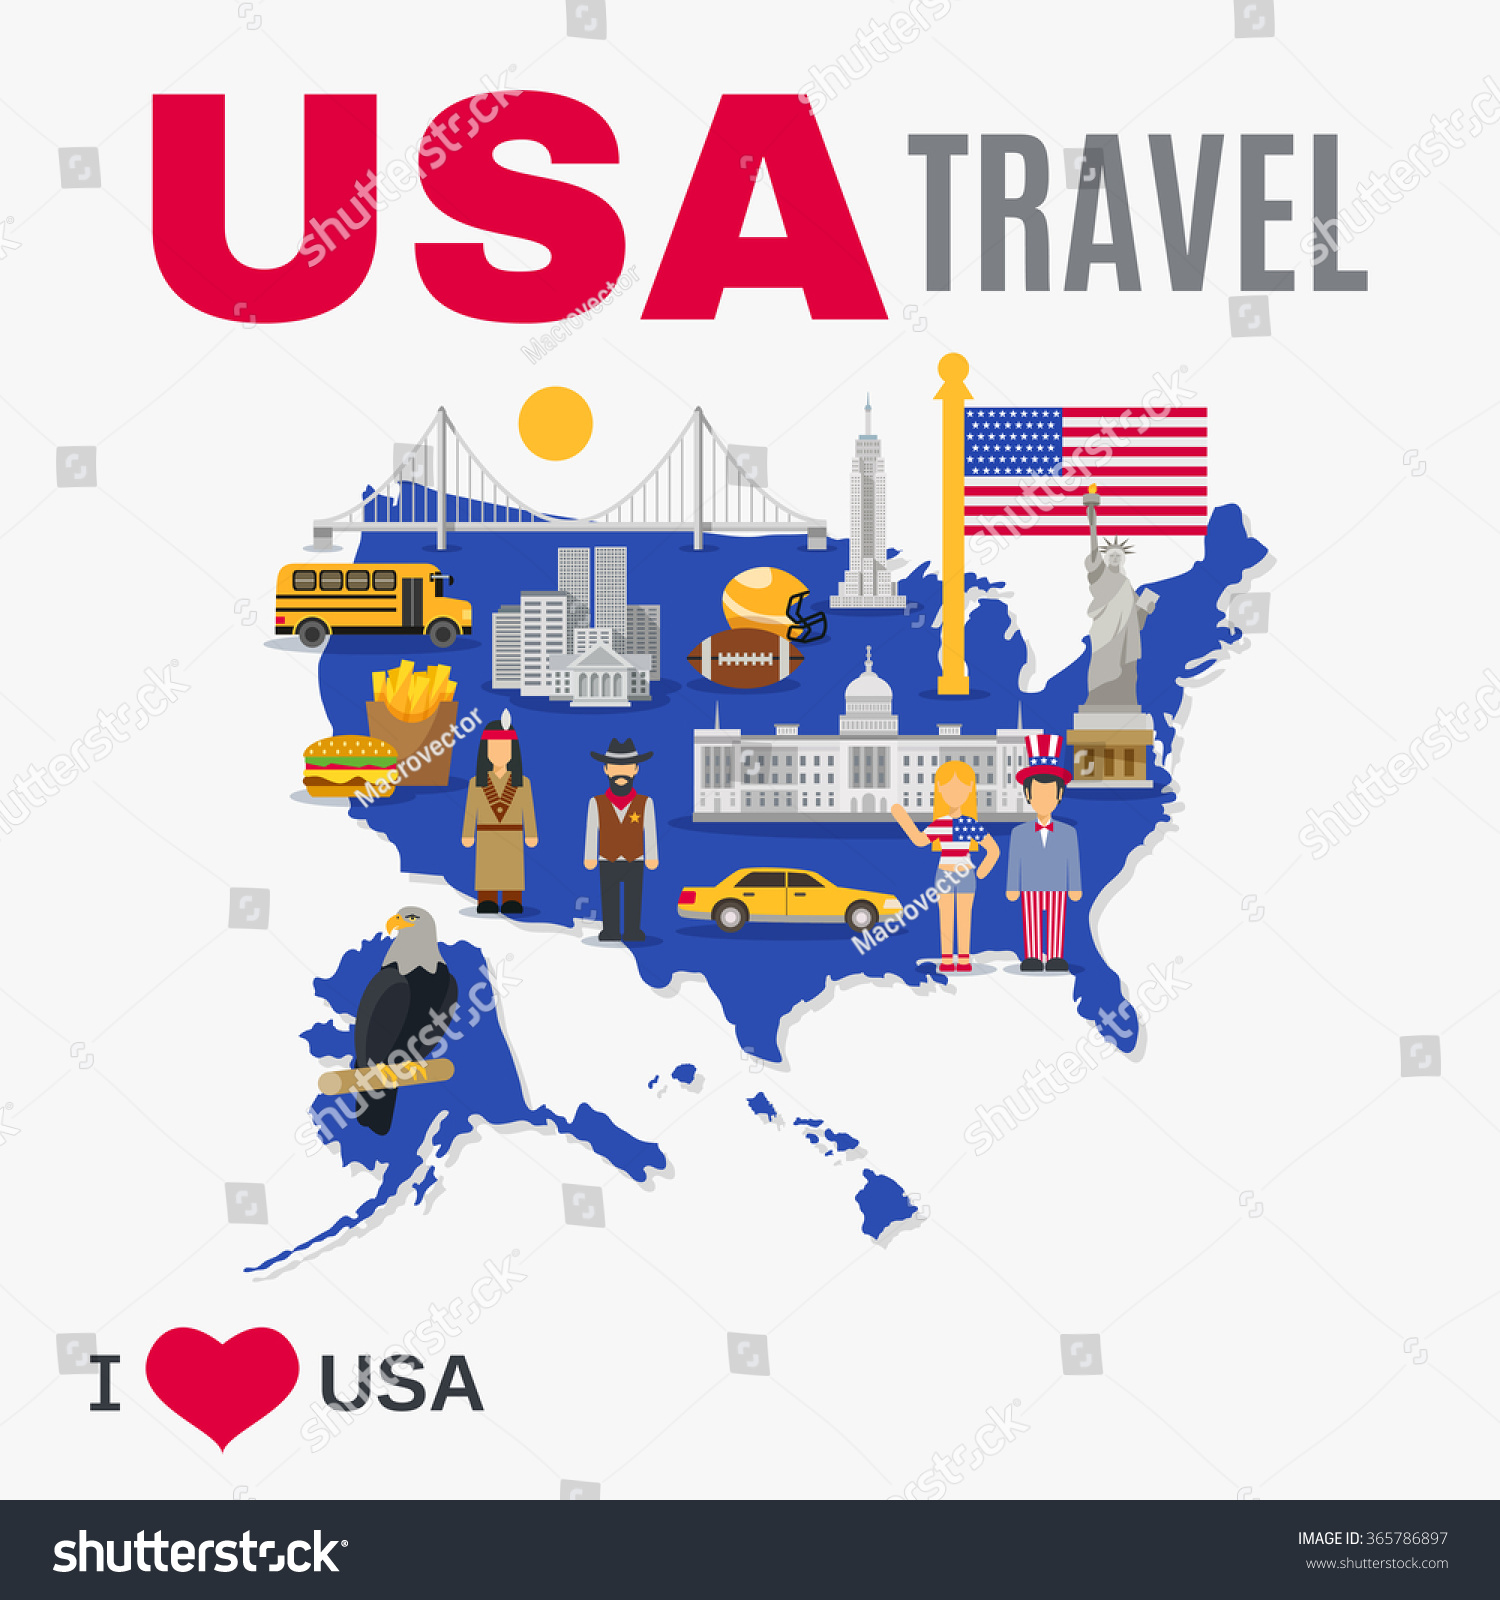 World travel agency usa top tourists stock vector for Design agency usa